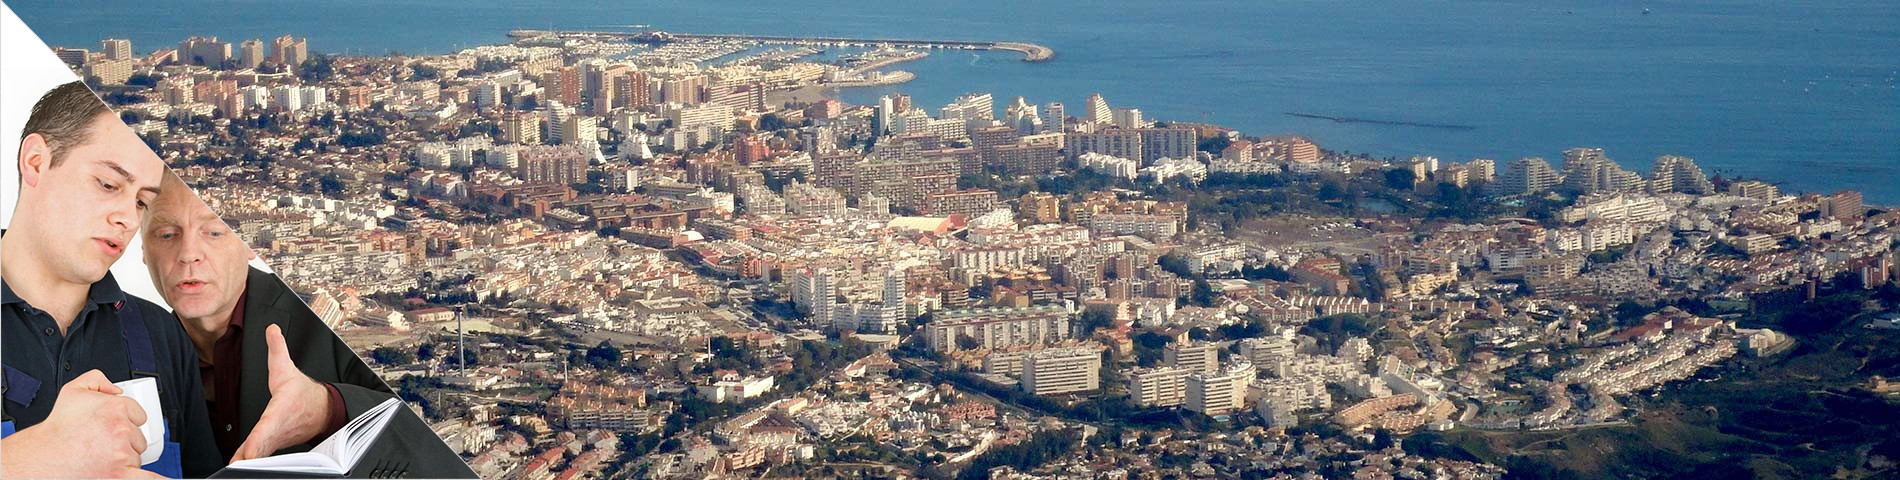 Benalmadena - One-to-one